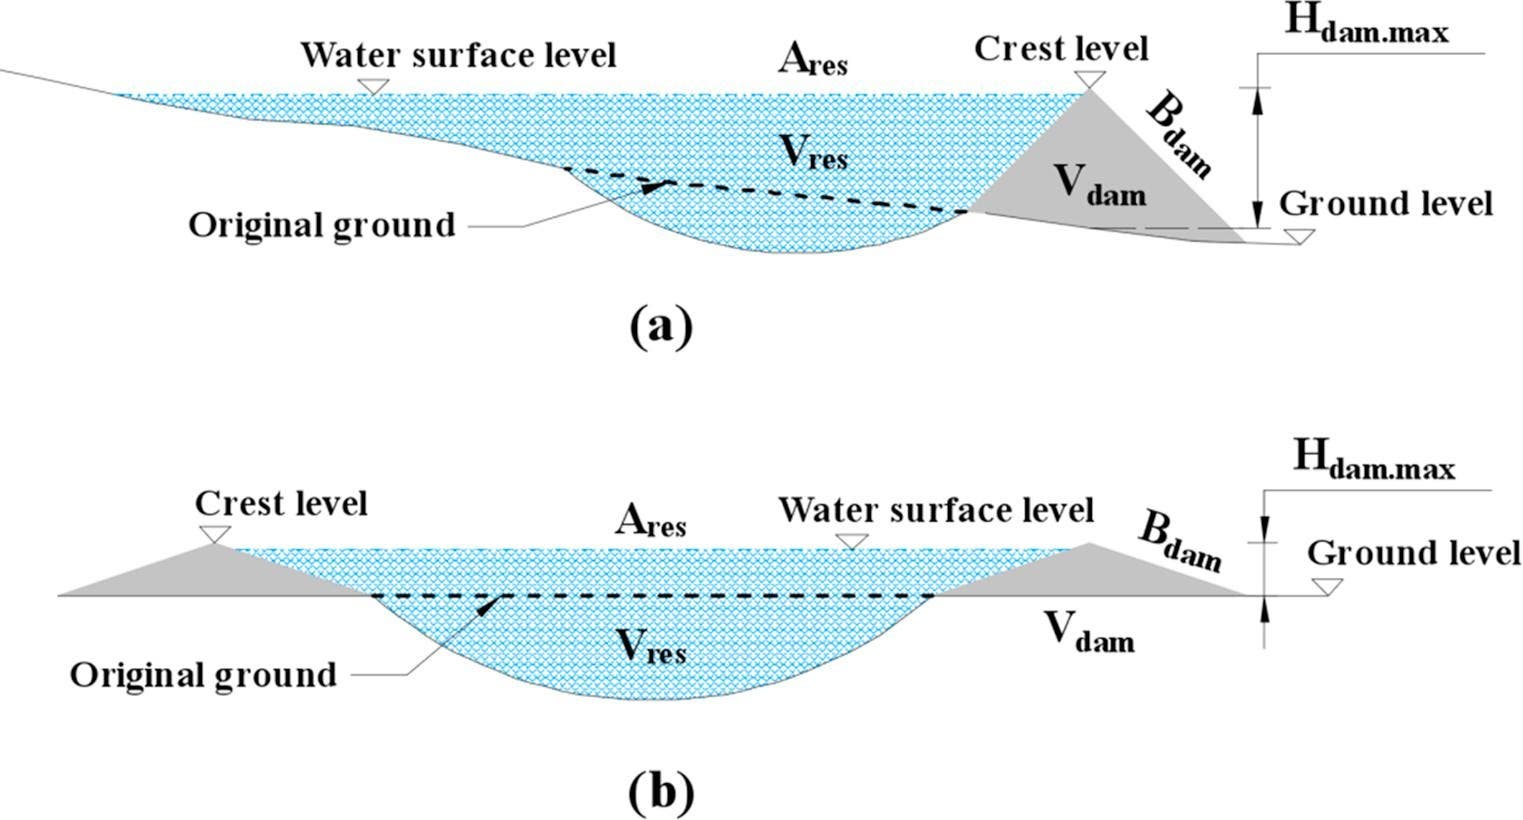 Diagram of dry-gully and turkey's-nest pumped hydro sites